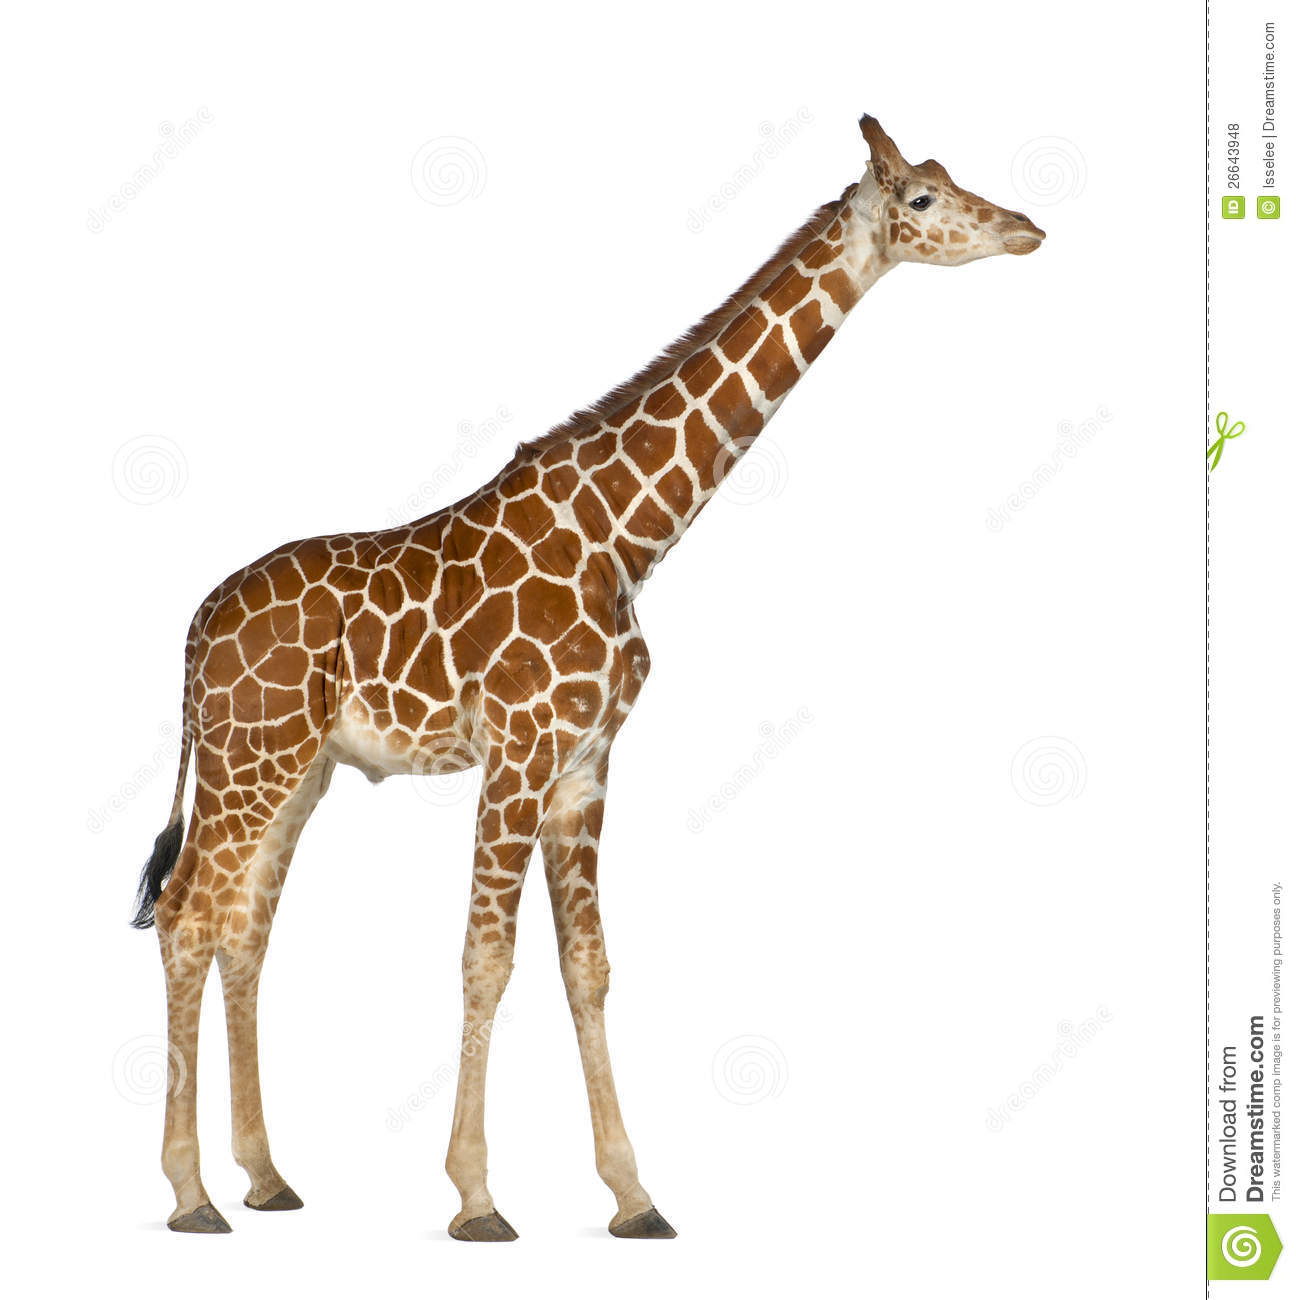 Somali Giraffe, commonly known as Reticulated Giraffe, Giraffa ...